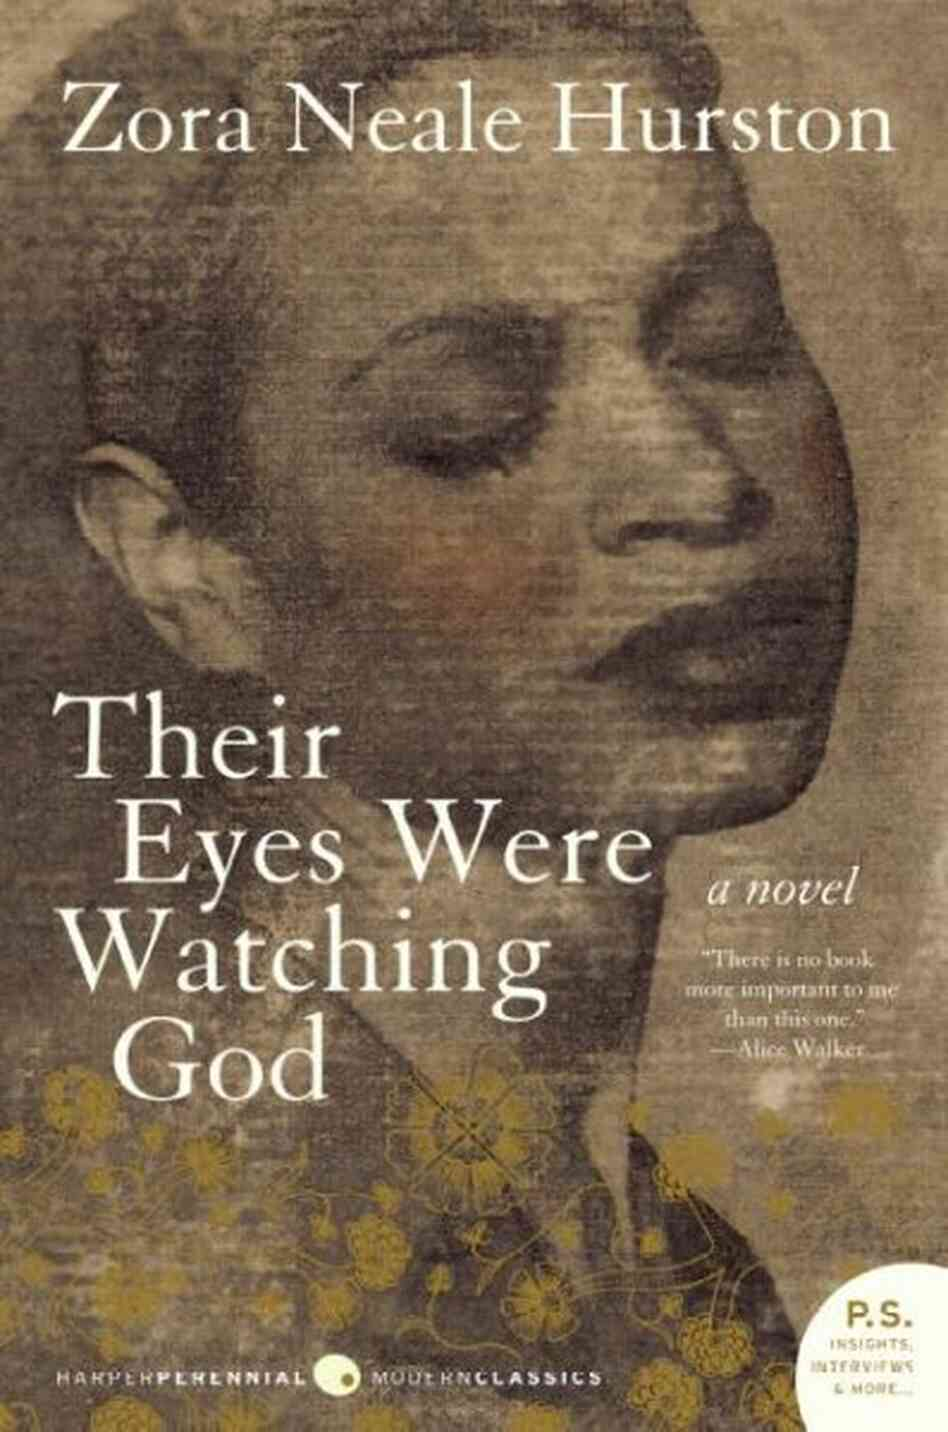 their eyes were wathiching god The best study guide to their eyes were watching god on the planet, from the creators of sparknotes get the summaries, analysis, and quotes you need.